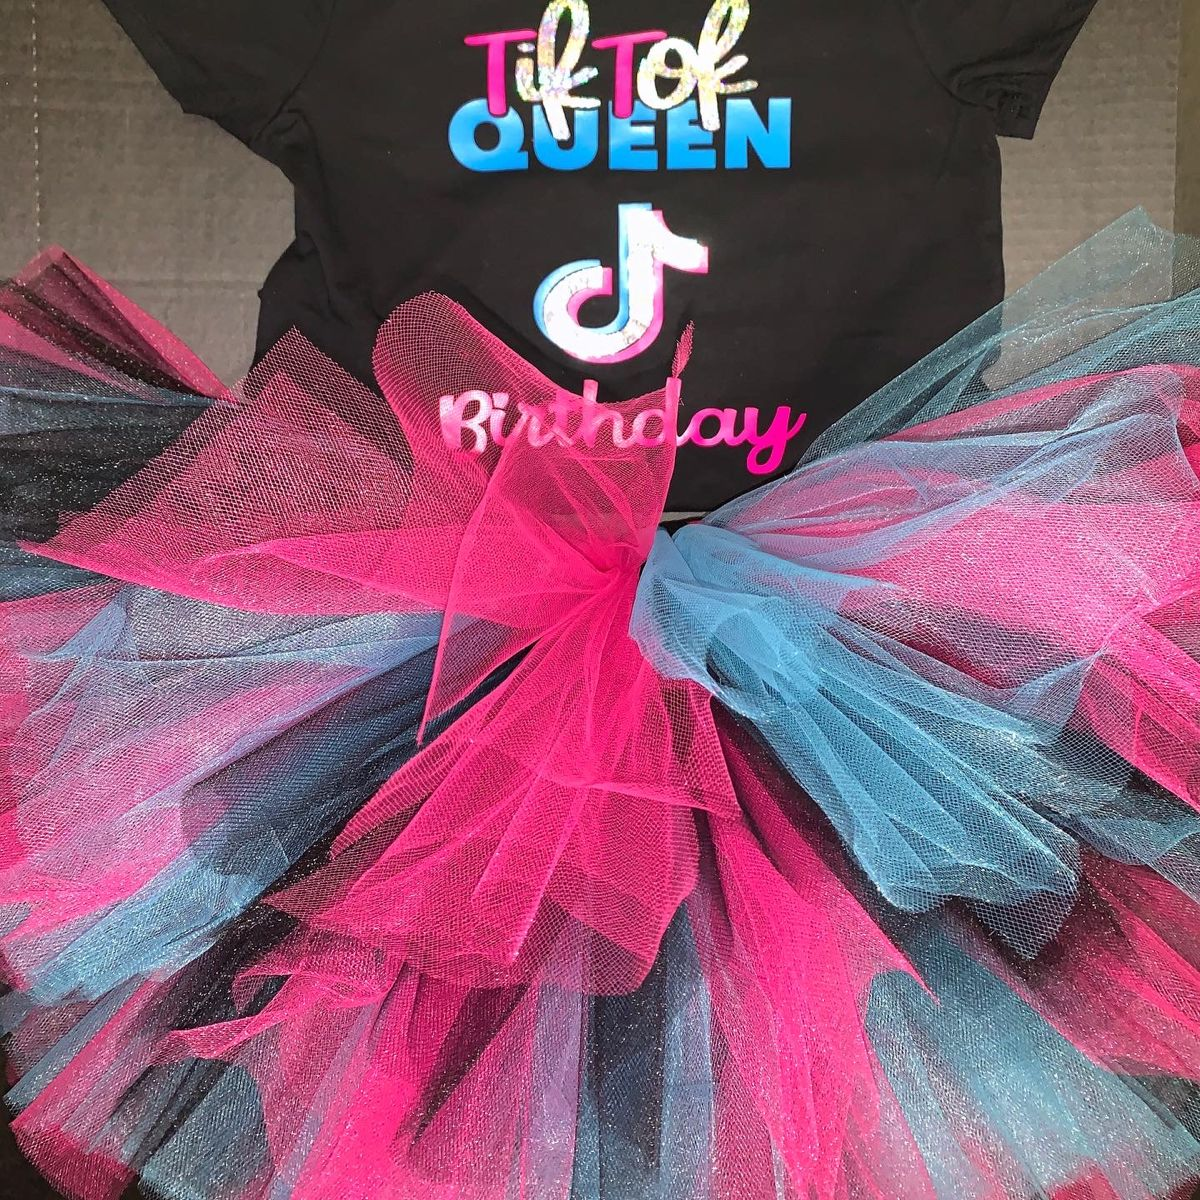 Tik Tok Inspired Birthday Tutu Set In Hot Pink Turquoise And Black Girl Bday Party Dance Party Birthday Tutu Outfits